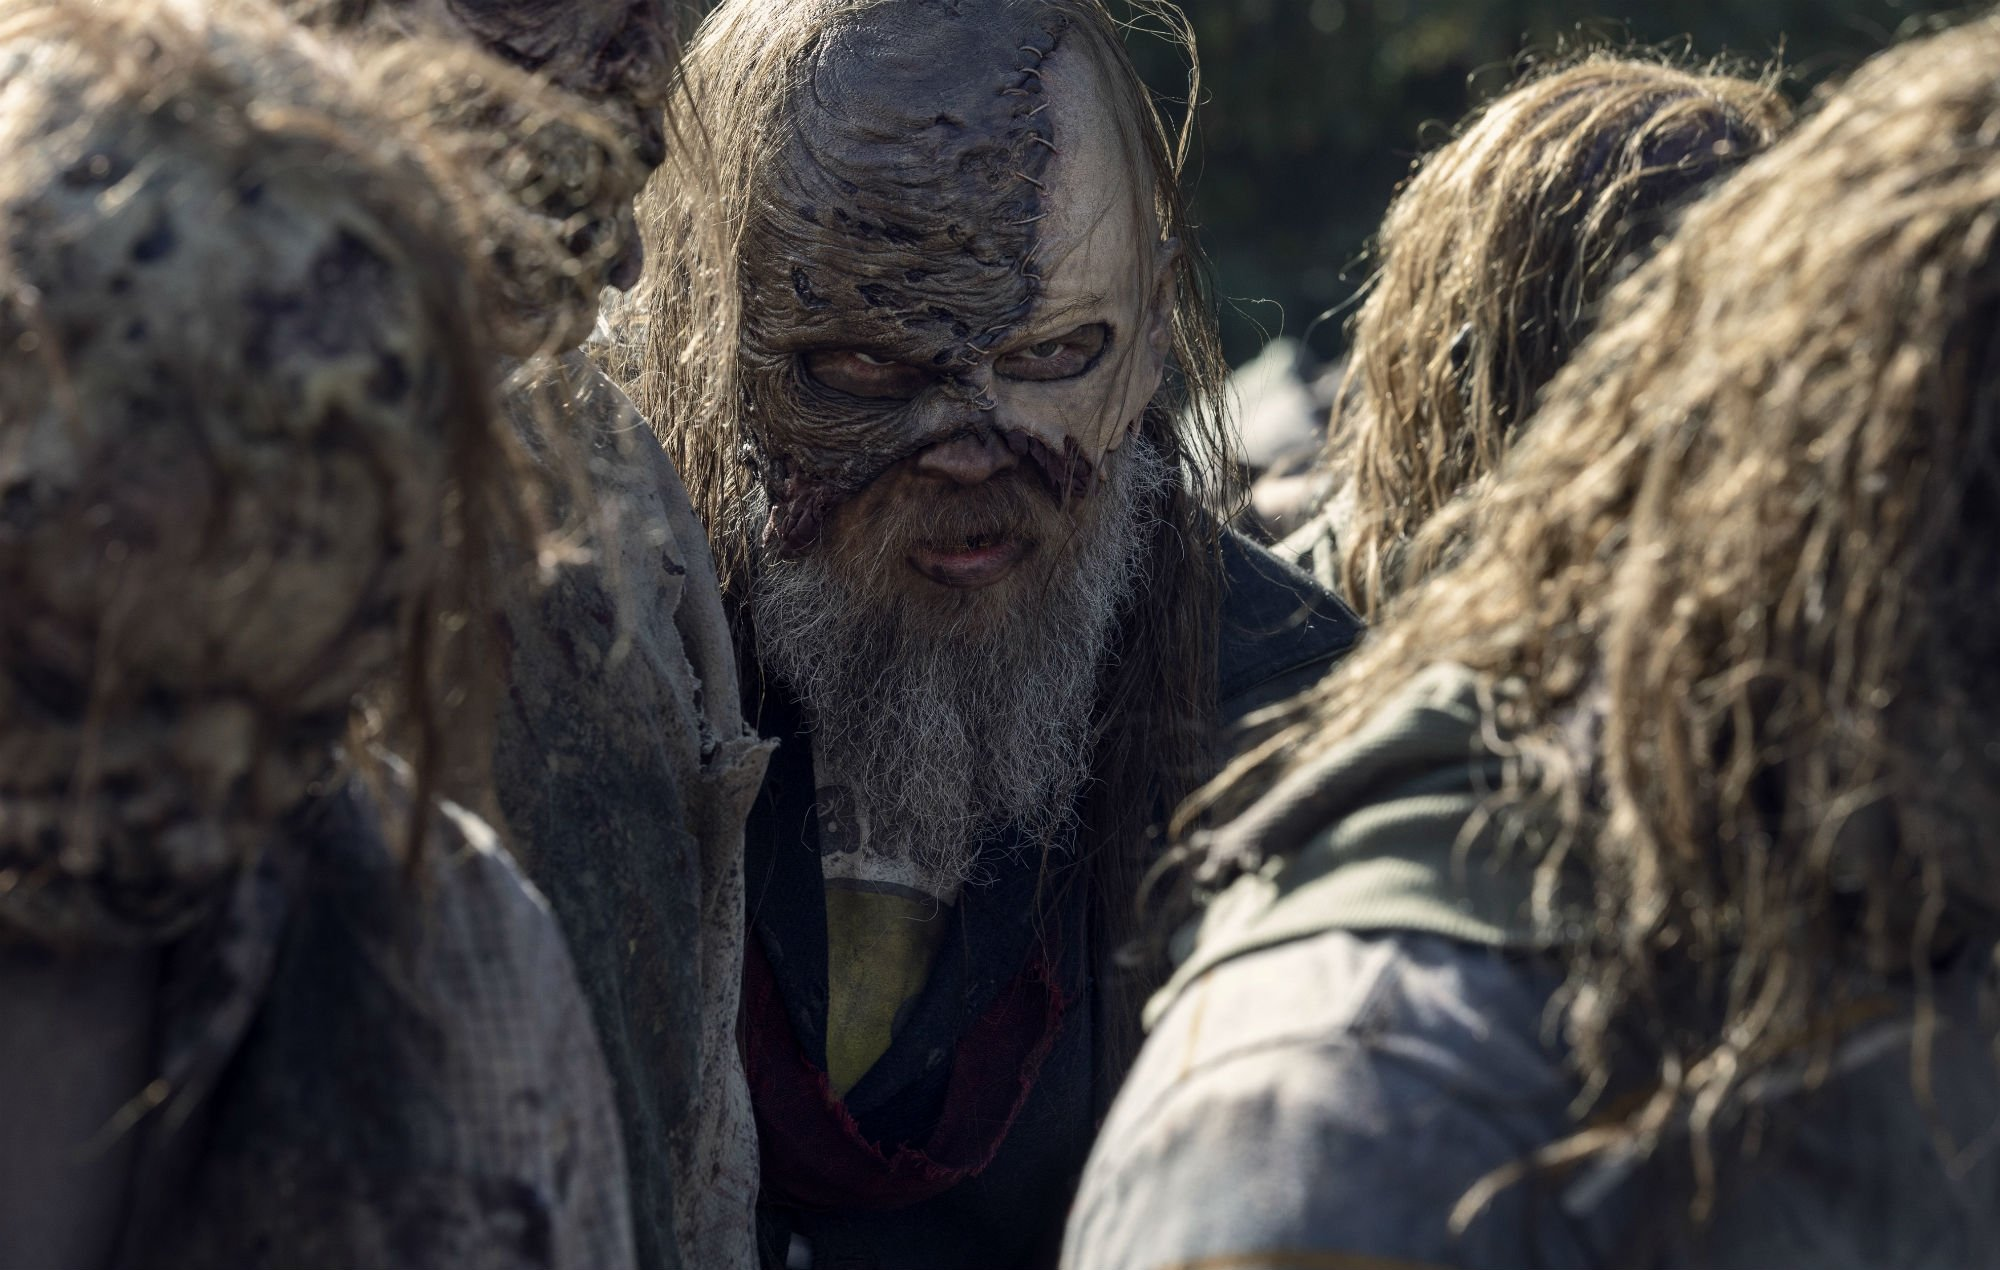 Beta, played by Ryan Hurst, in a scene after the death of Alpha in 'The Walking Dead'.